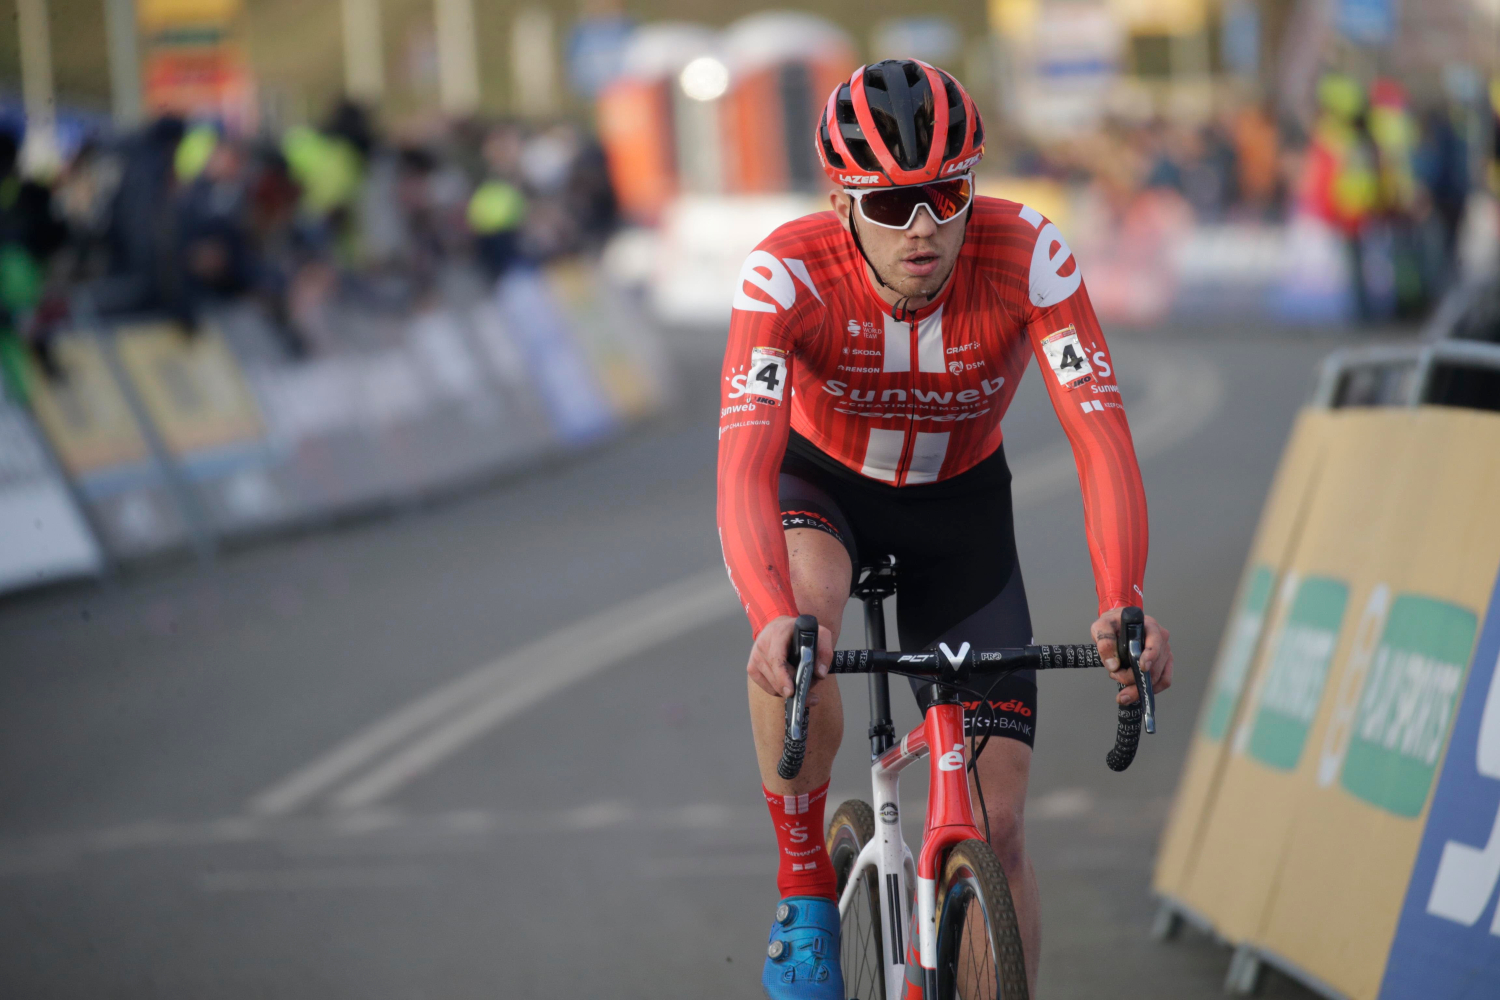 Hoogerheide - Netherlands  - wielrennen - cycling - radsport - cyclisme - Joris Nieuwenhuis (Netherlands / Team Sunweb) pictured during the ninth leg of the menÕs elite UCI cyclo-cross World Cup 2020 cross, on January 26, 2020 in Hoogerheide, the Netherlands - photo Anton Vos/Cor Vos © 2020